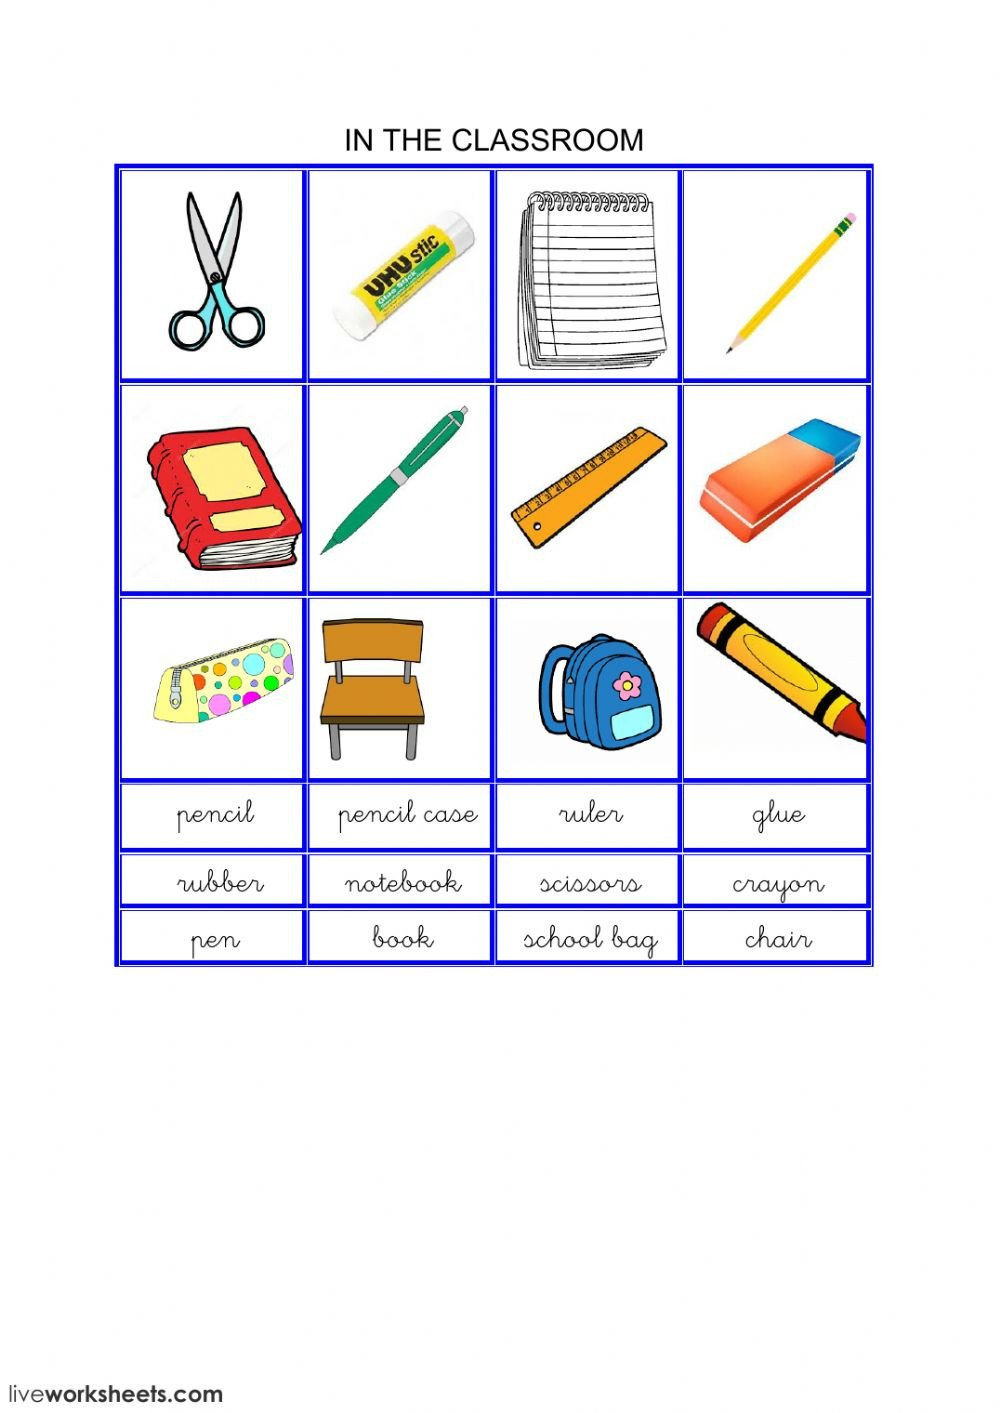 Classroom Objects Worksheets Pdf Classroom Objects Online Worksheet and Pdf